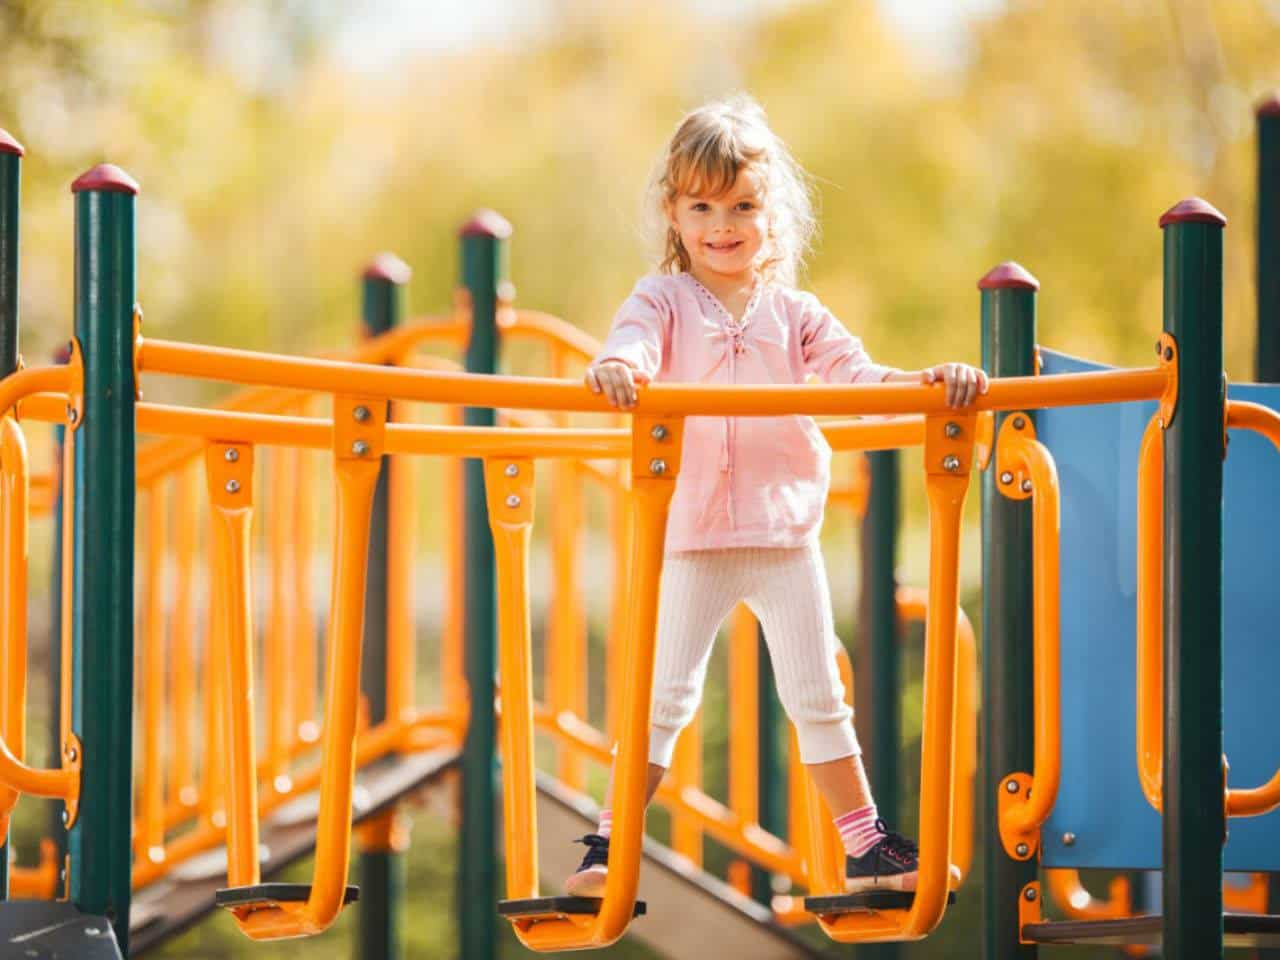 Little girl at a playground